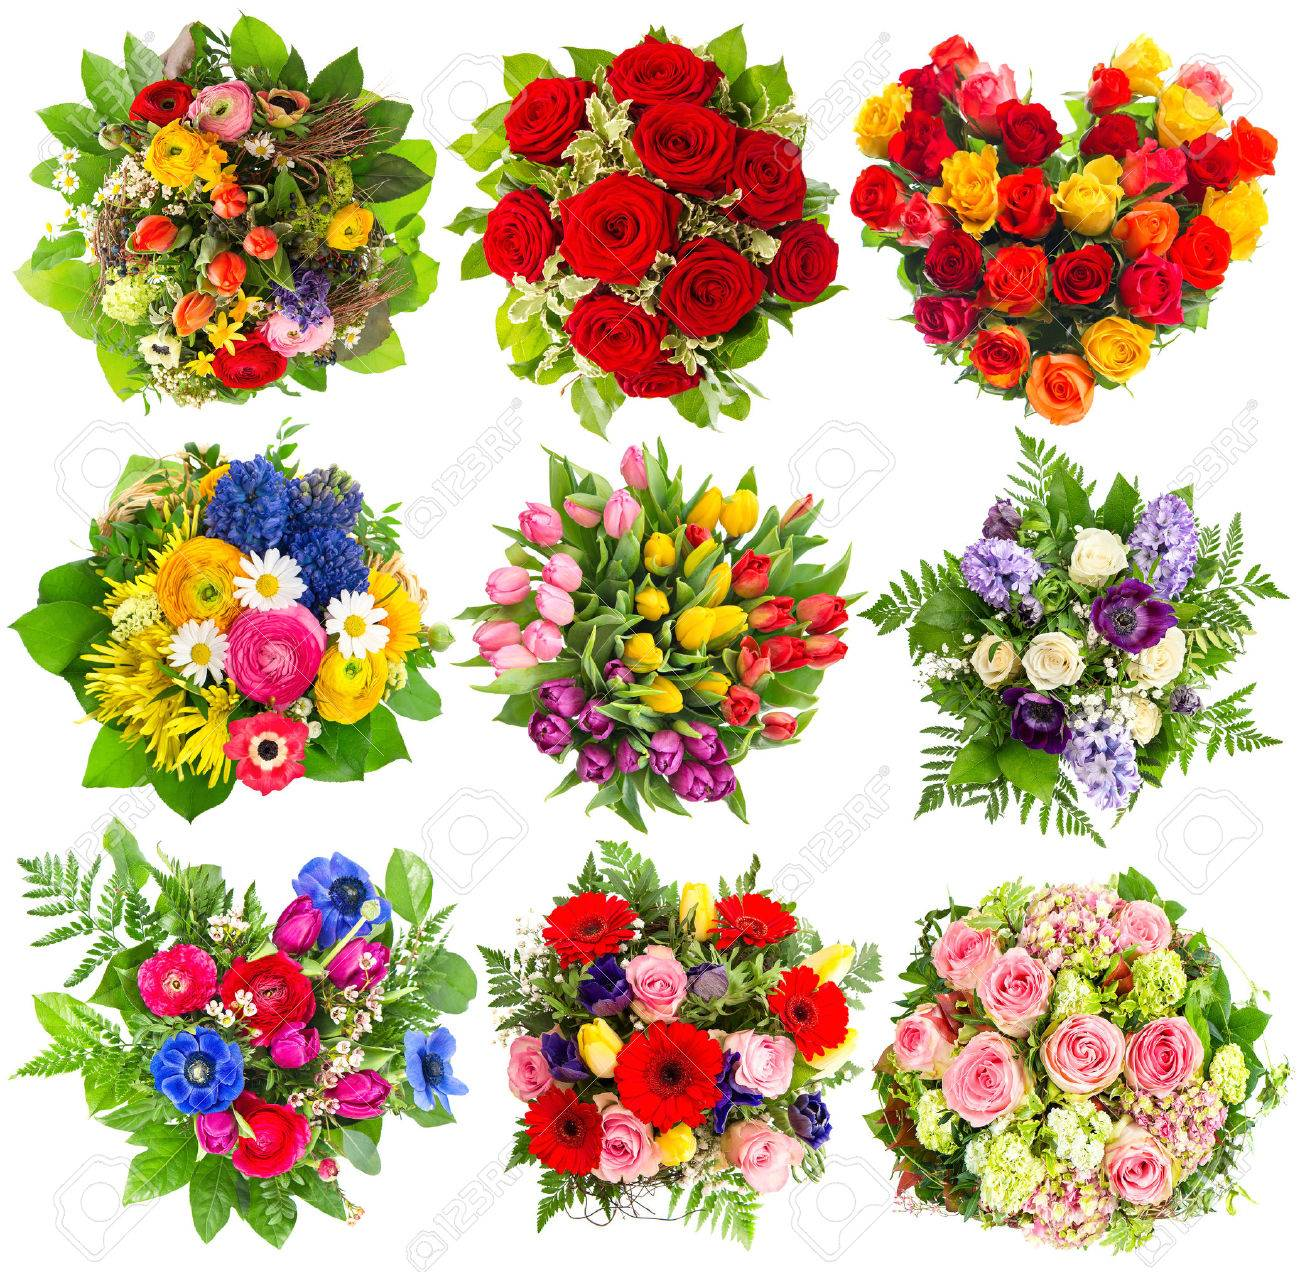 Bouquets Of Colorful Flowers For Birthday Wedding Mothers Day